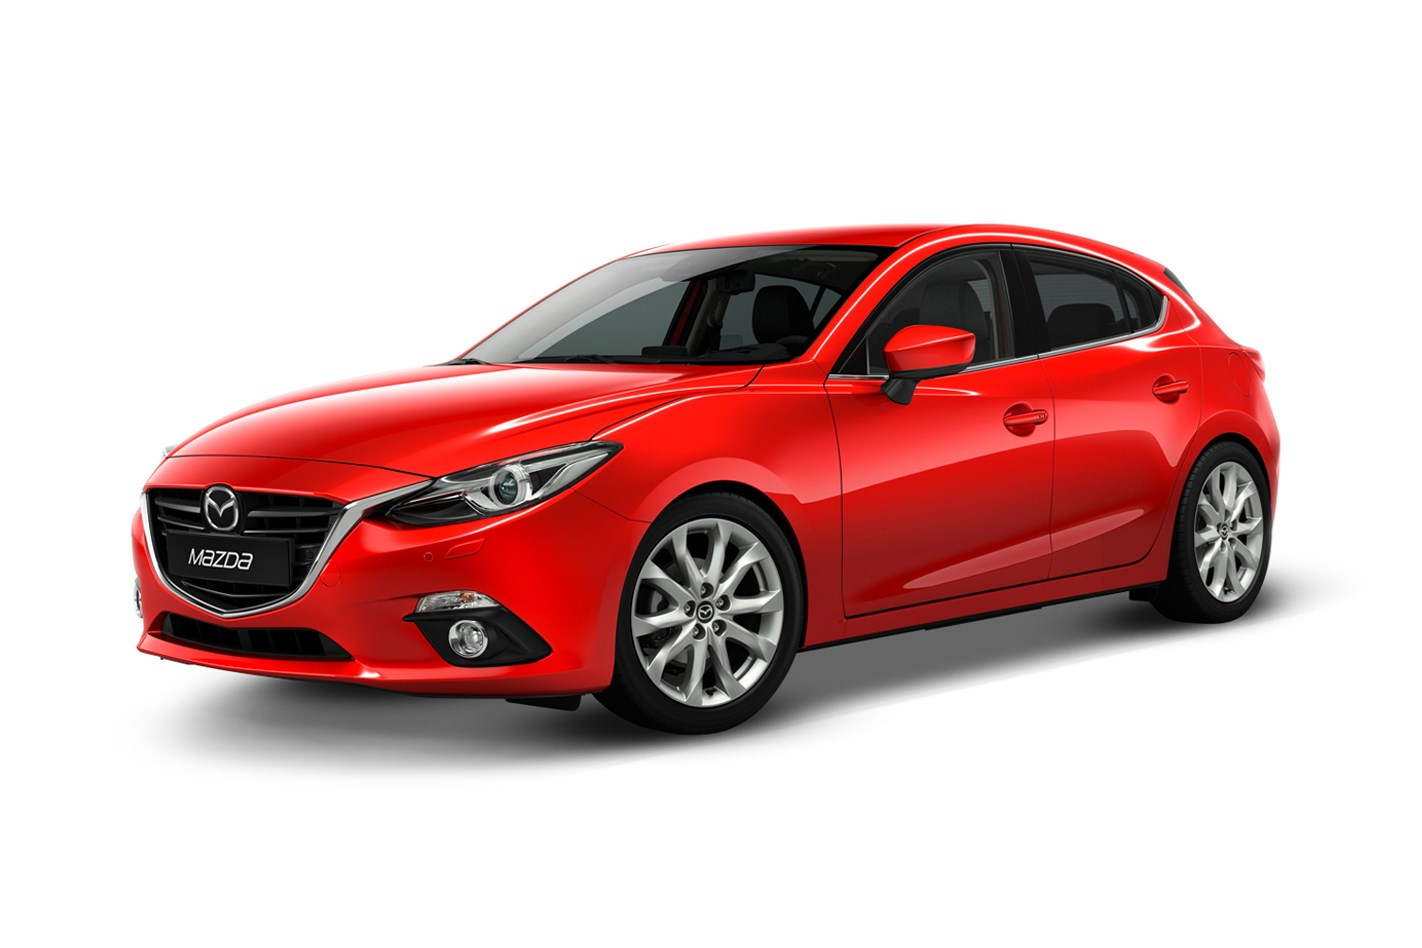 horsepower mazda review price sedan car with hatchback article notes gt and lg reviews drive test photo